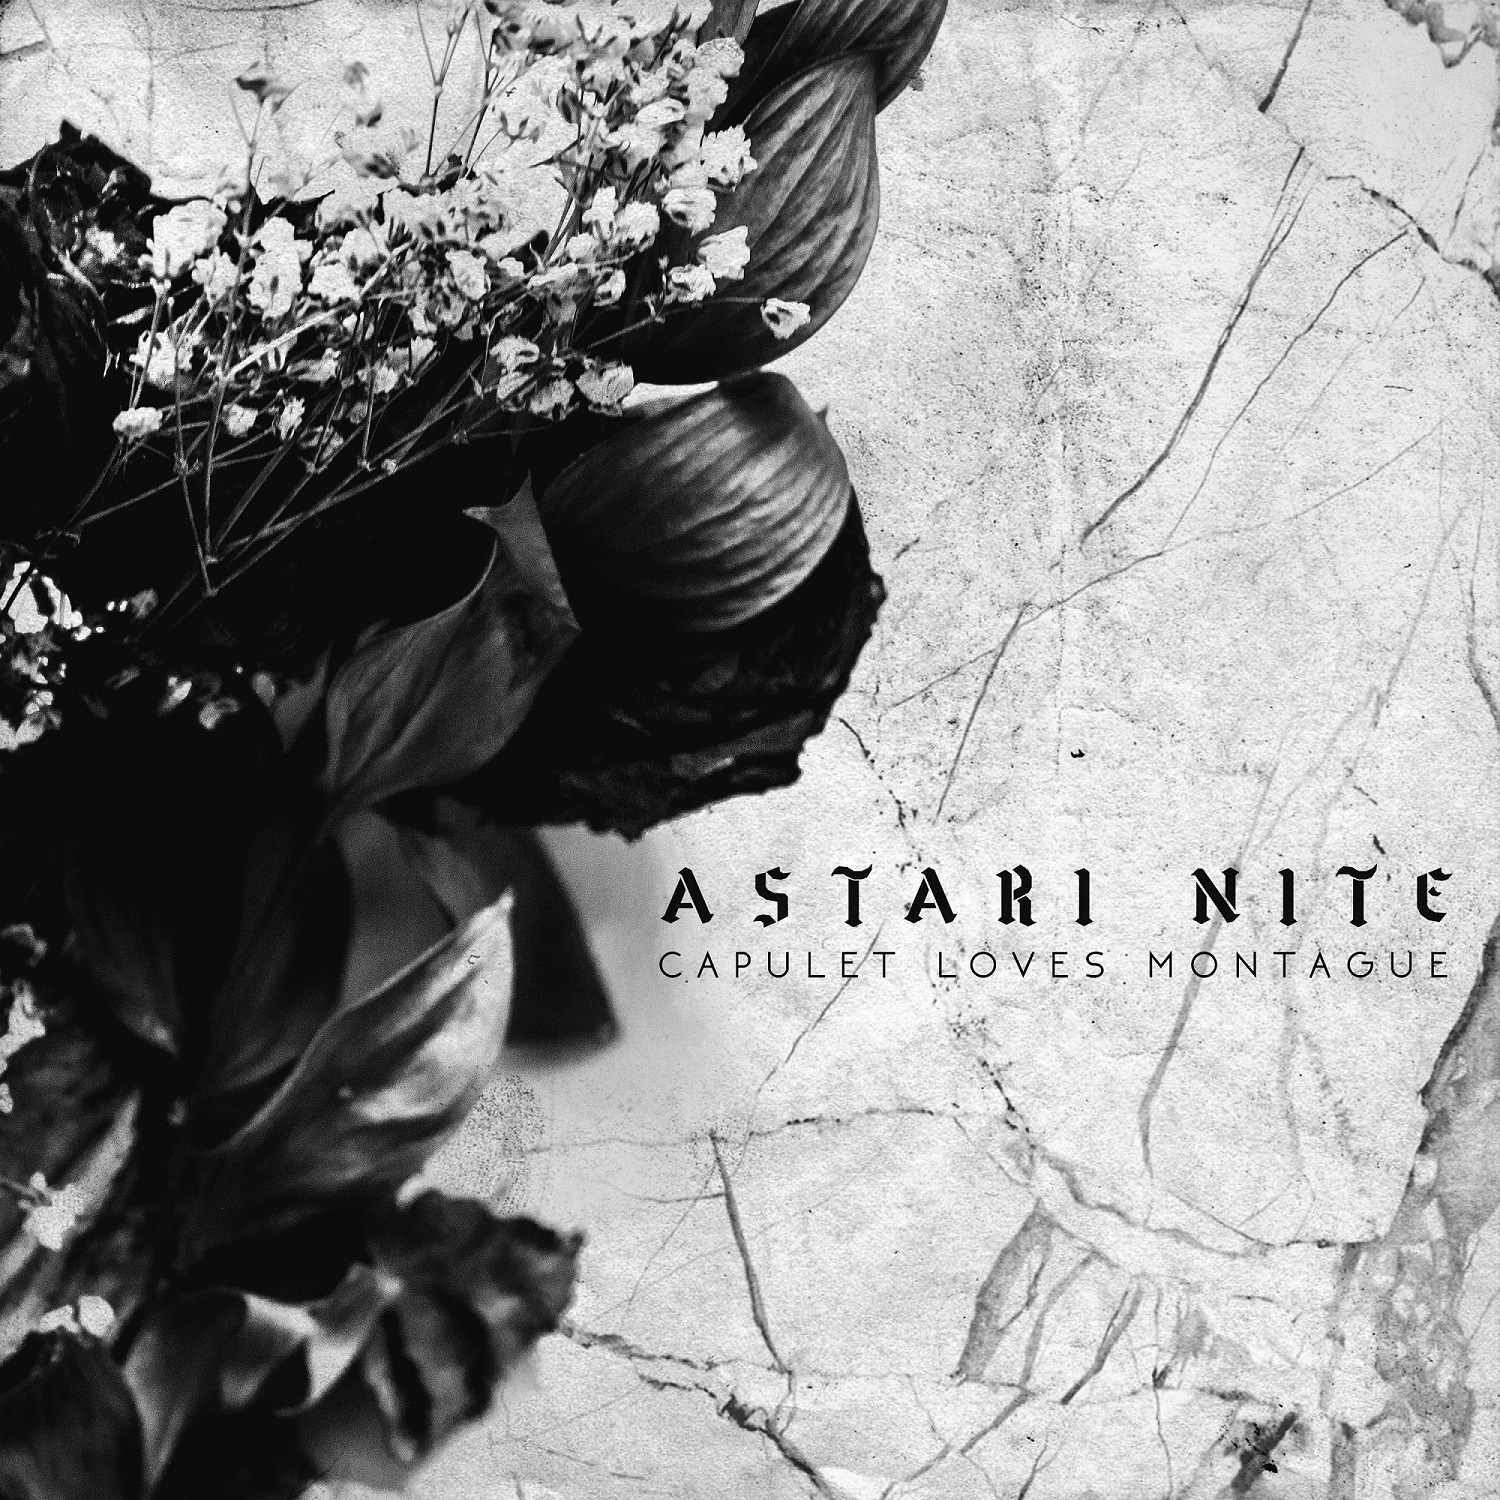 astari nite capulet loves montague cover